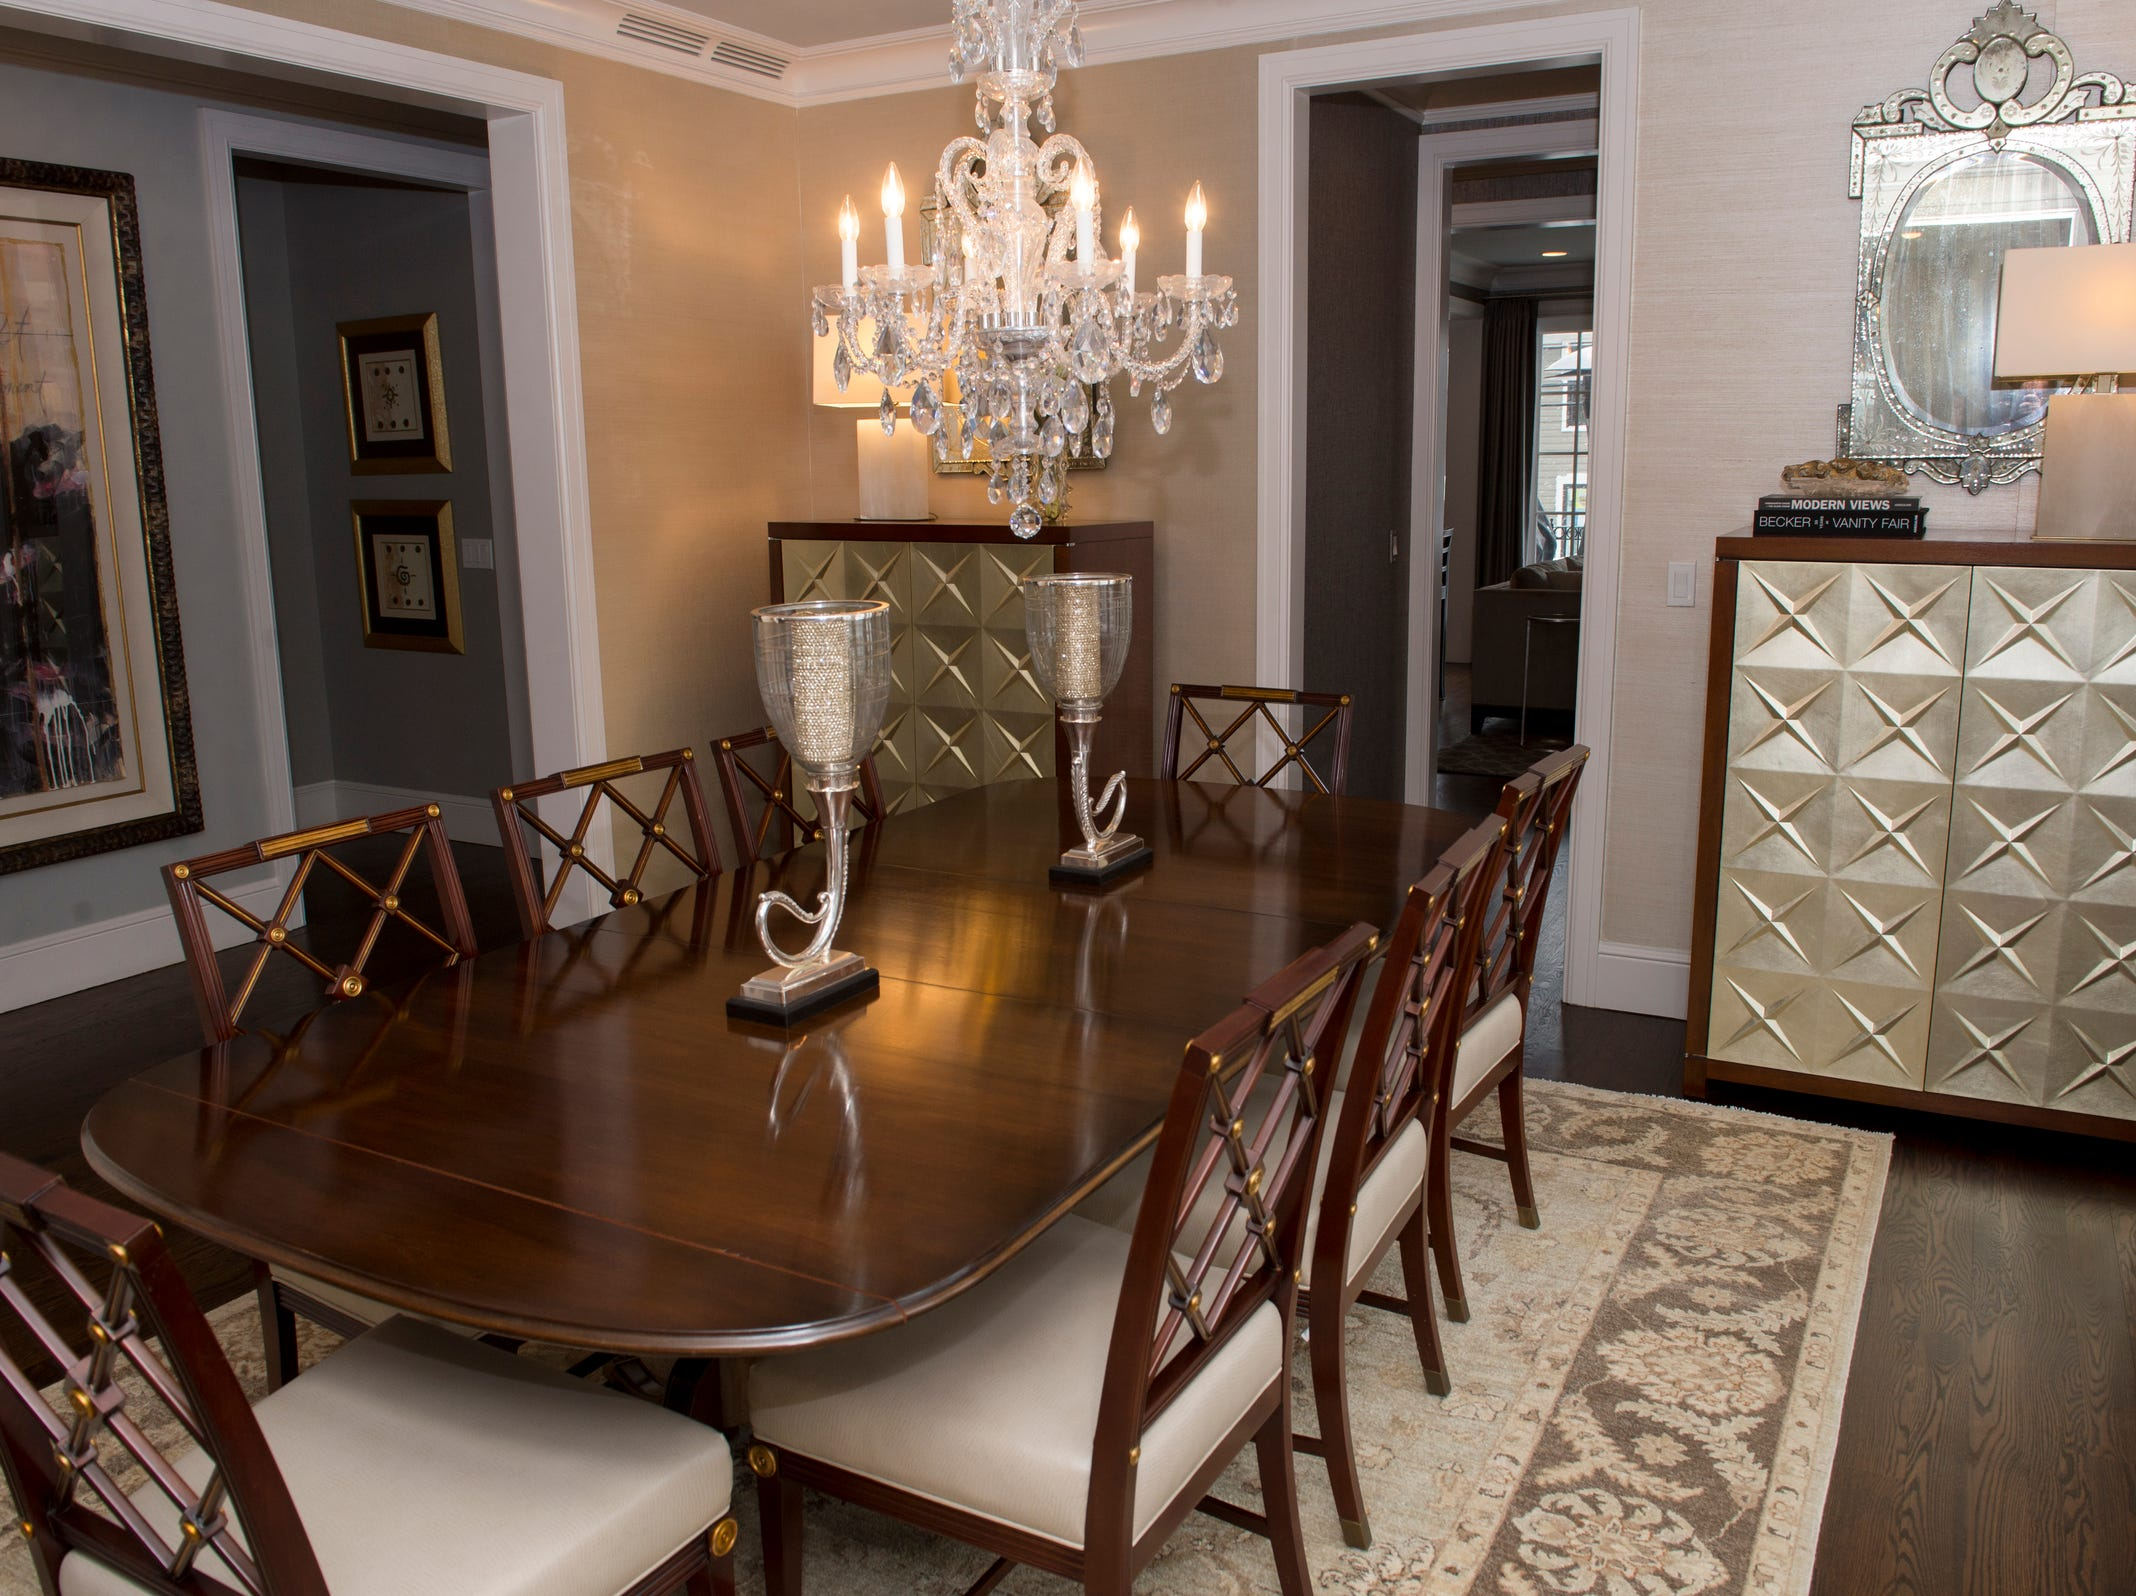 The dining room is fully furnished with matching cabinets.